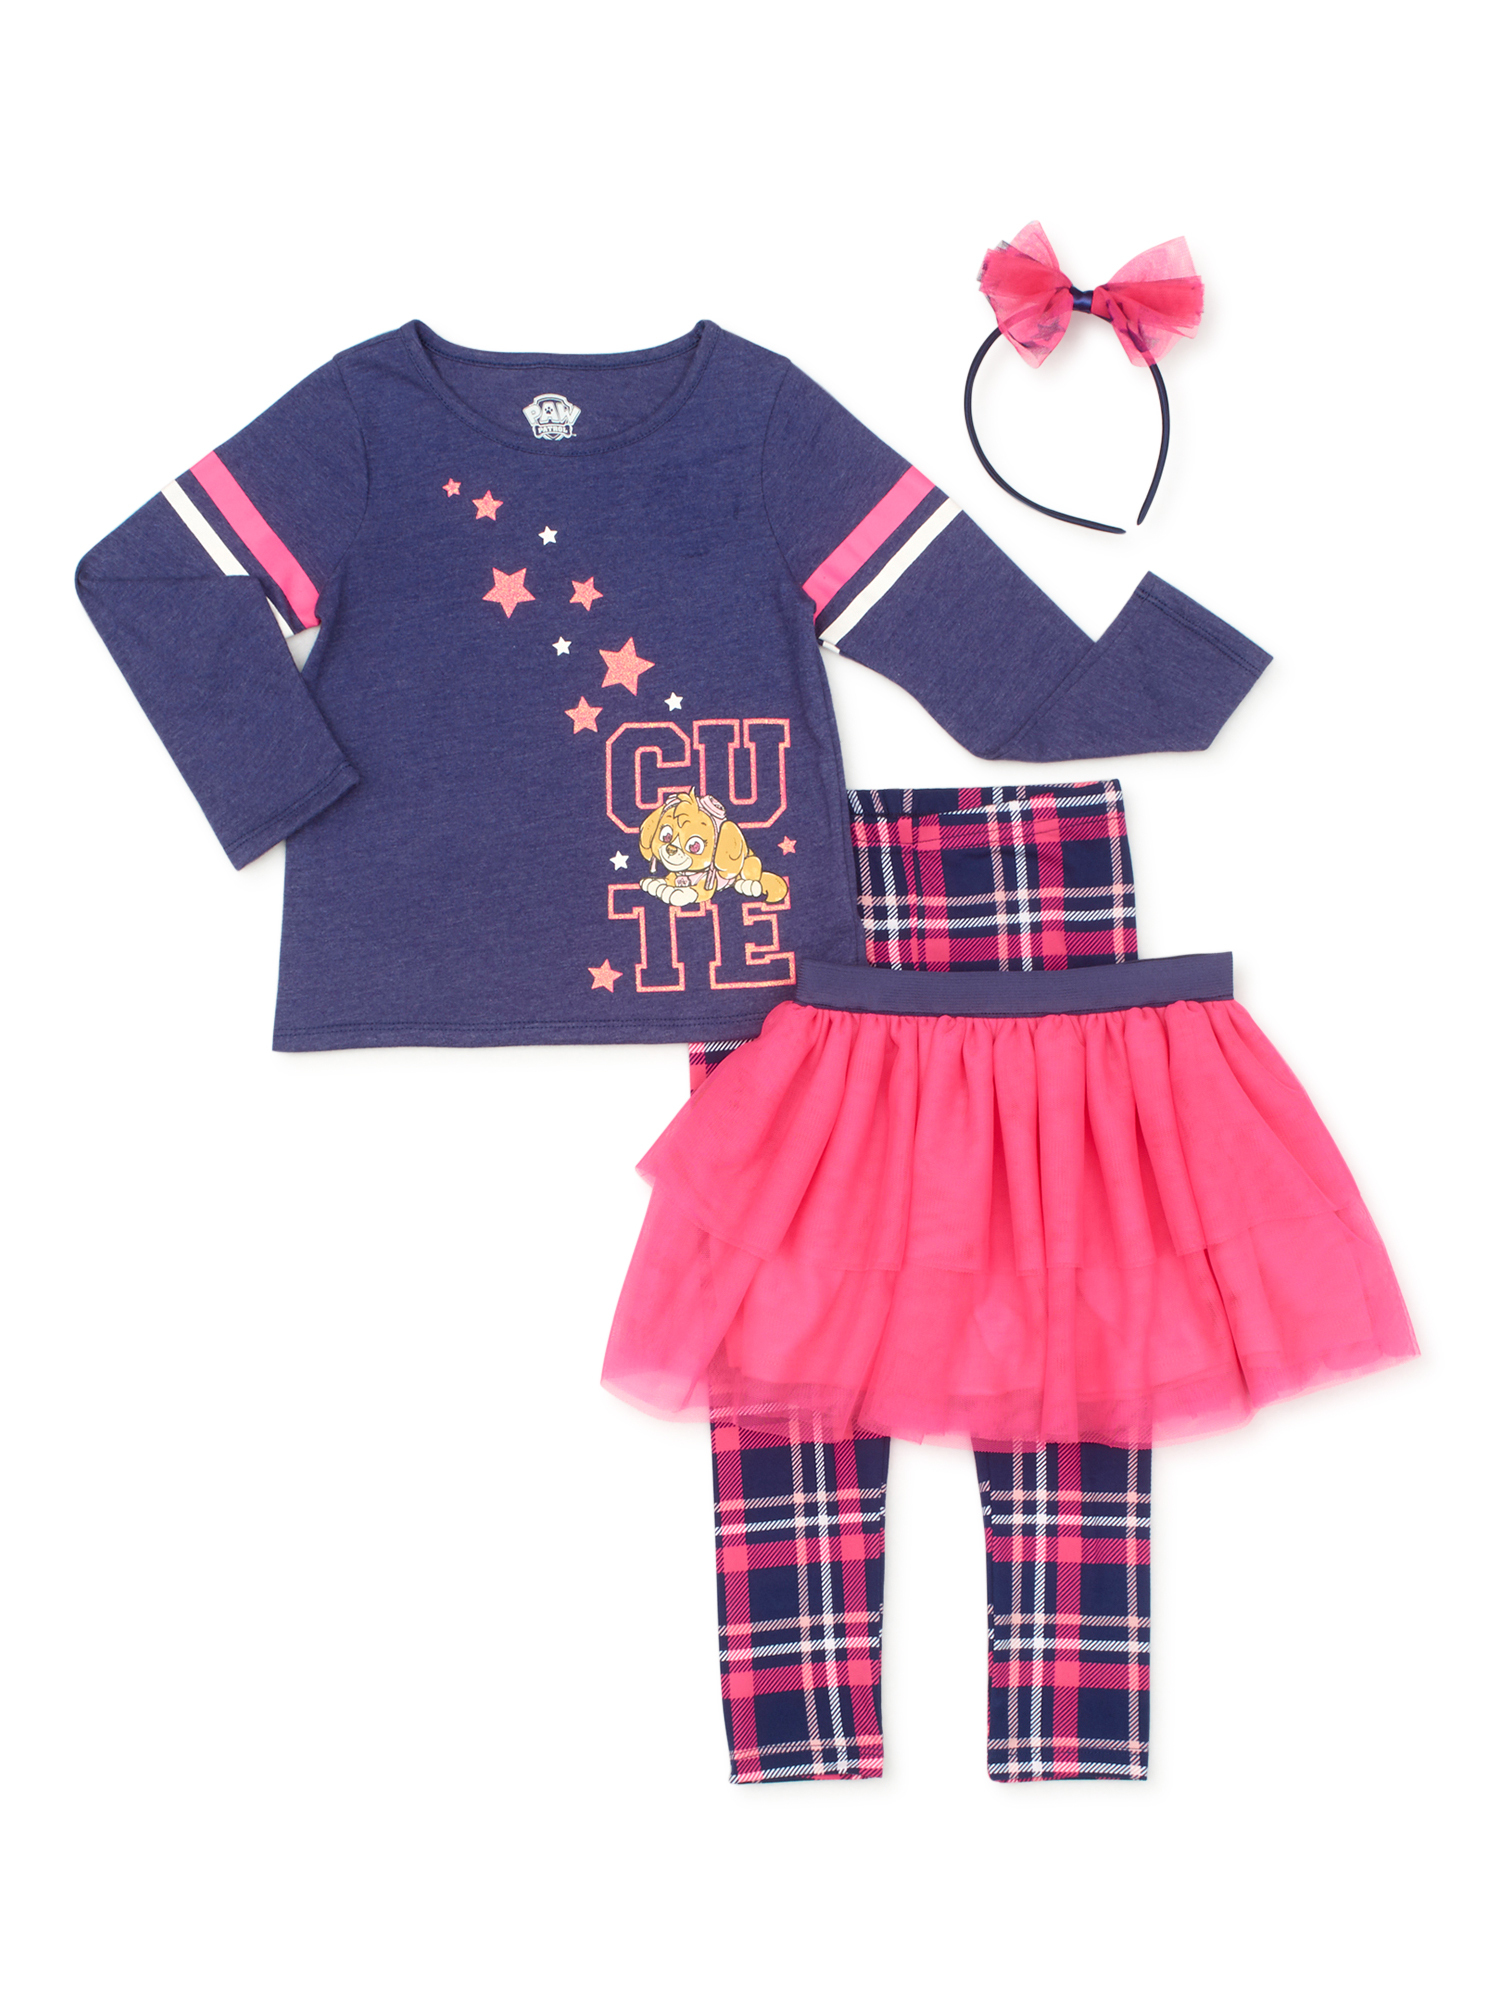 for 1-2 Years Old Little Children Janly Clearance Sale Baby Top Skirt Set 0-5 Years Old Toddler Girls Heart Pearl Tops Tee T-Shirt Skirts Set Outfits Clothes